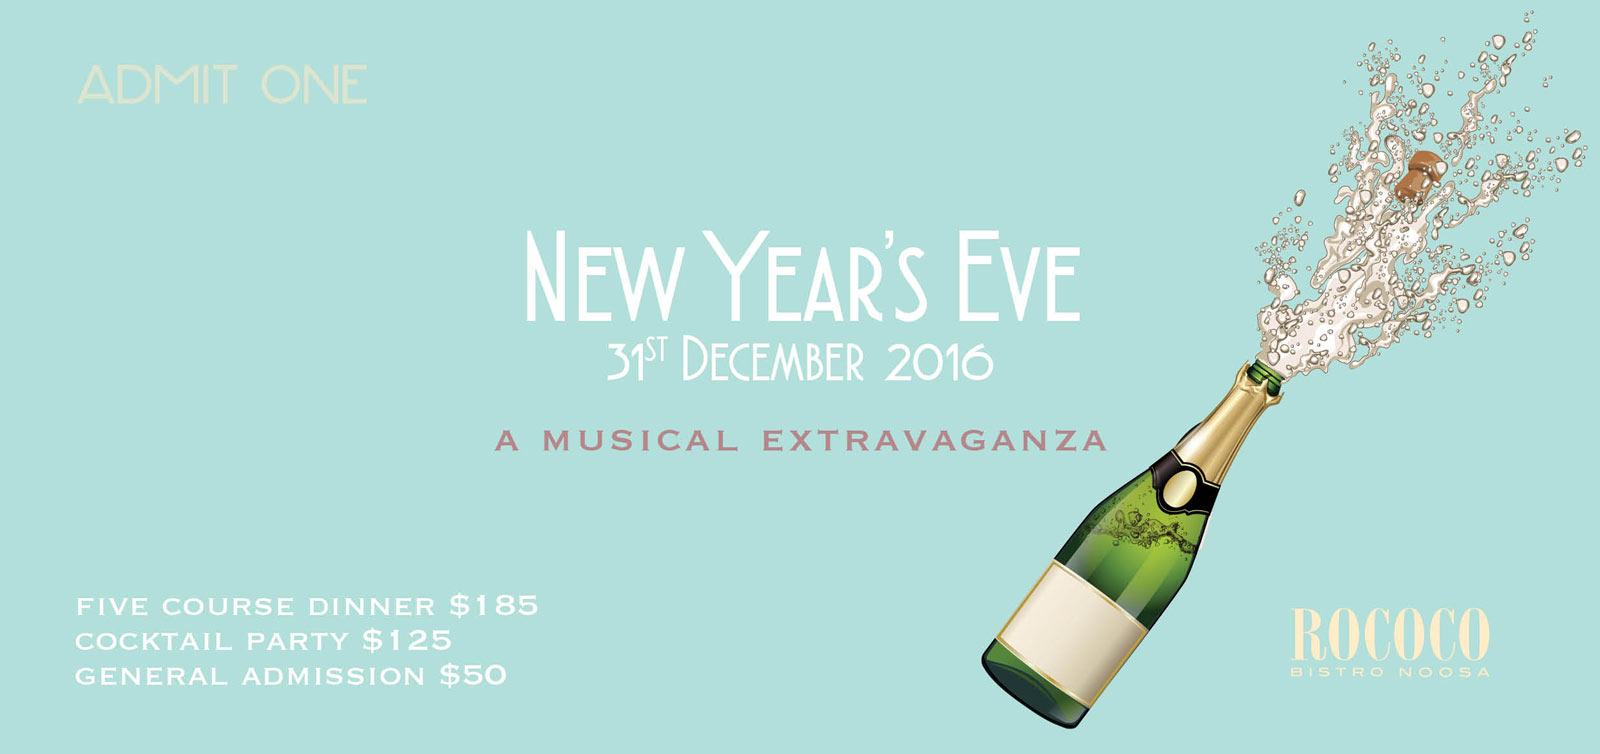 events-2016-new-year-eve-flyer